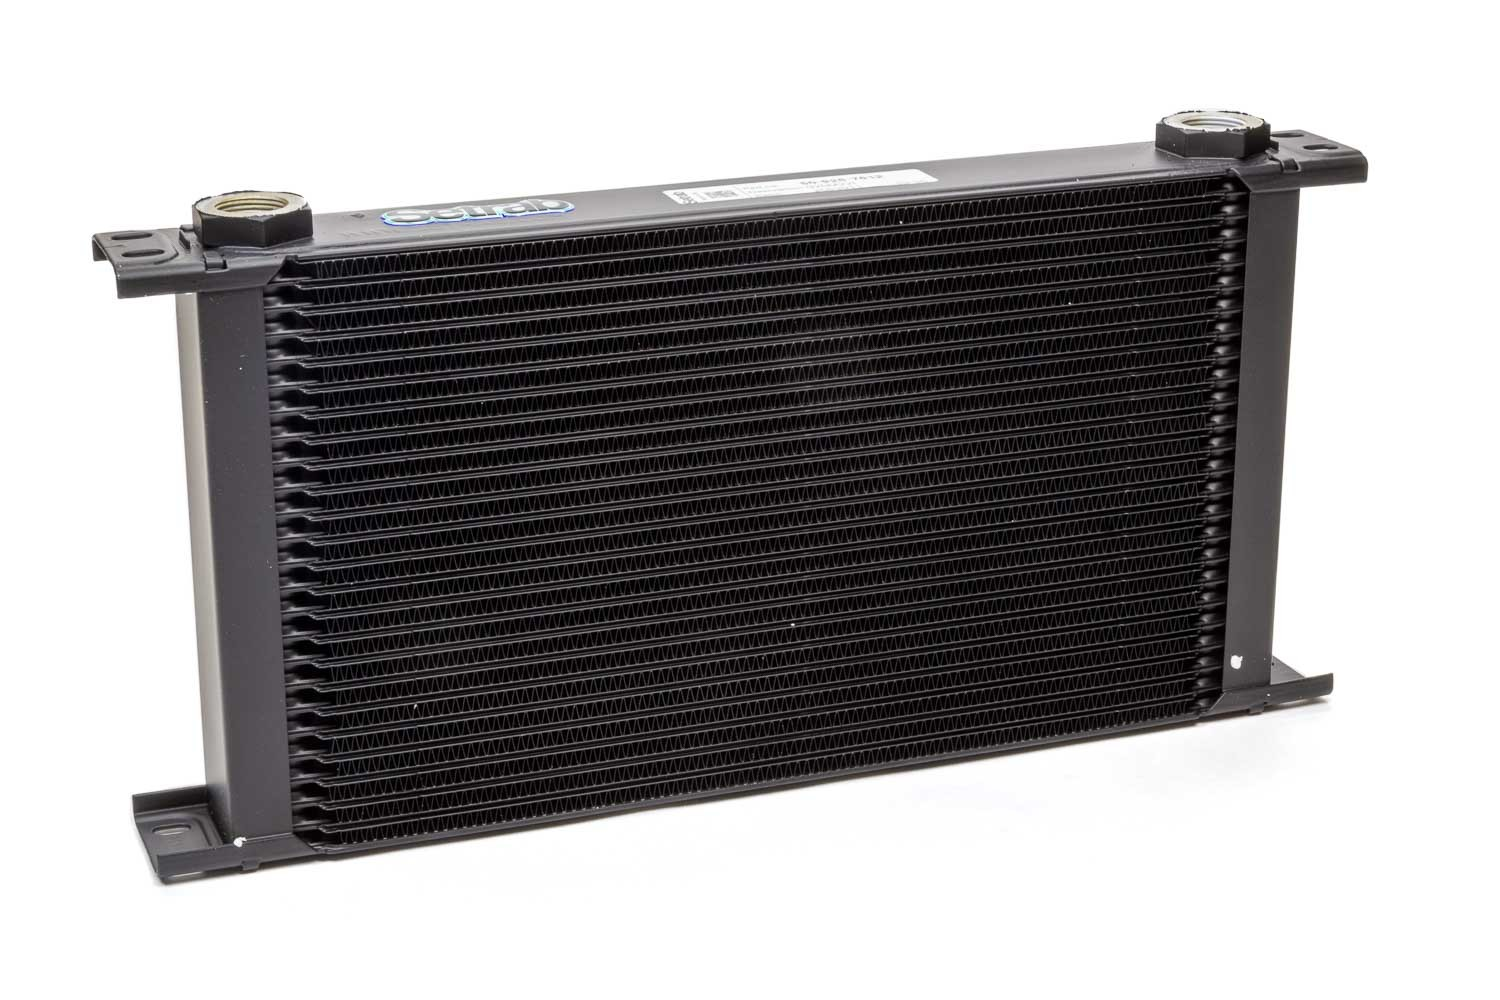 Setrab Oil Coolers 50-925-7612 Fluid Cooler, ProLine STD 9 Series, 16 x 7-5/8 x 2 in, Plate Type, 22 mm x 1.50 Female Inlet / Outlet, Aluminum, Black Paint, Universal, Each